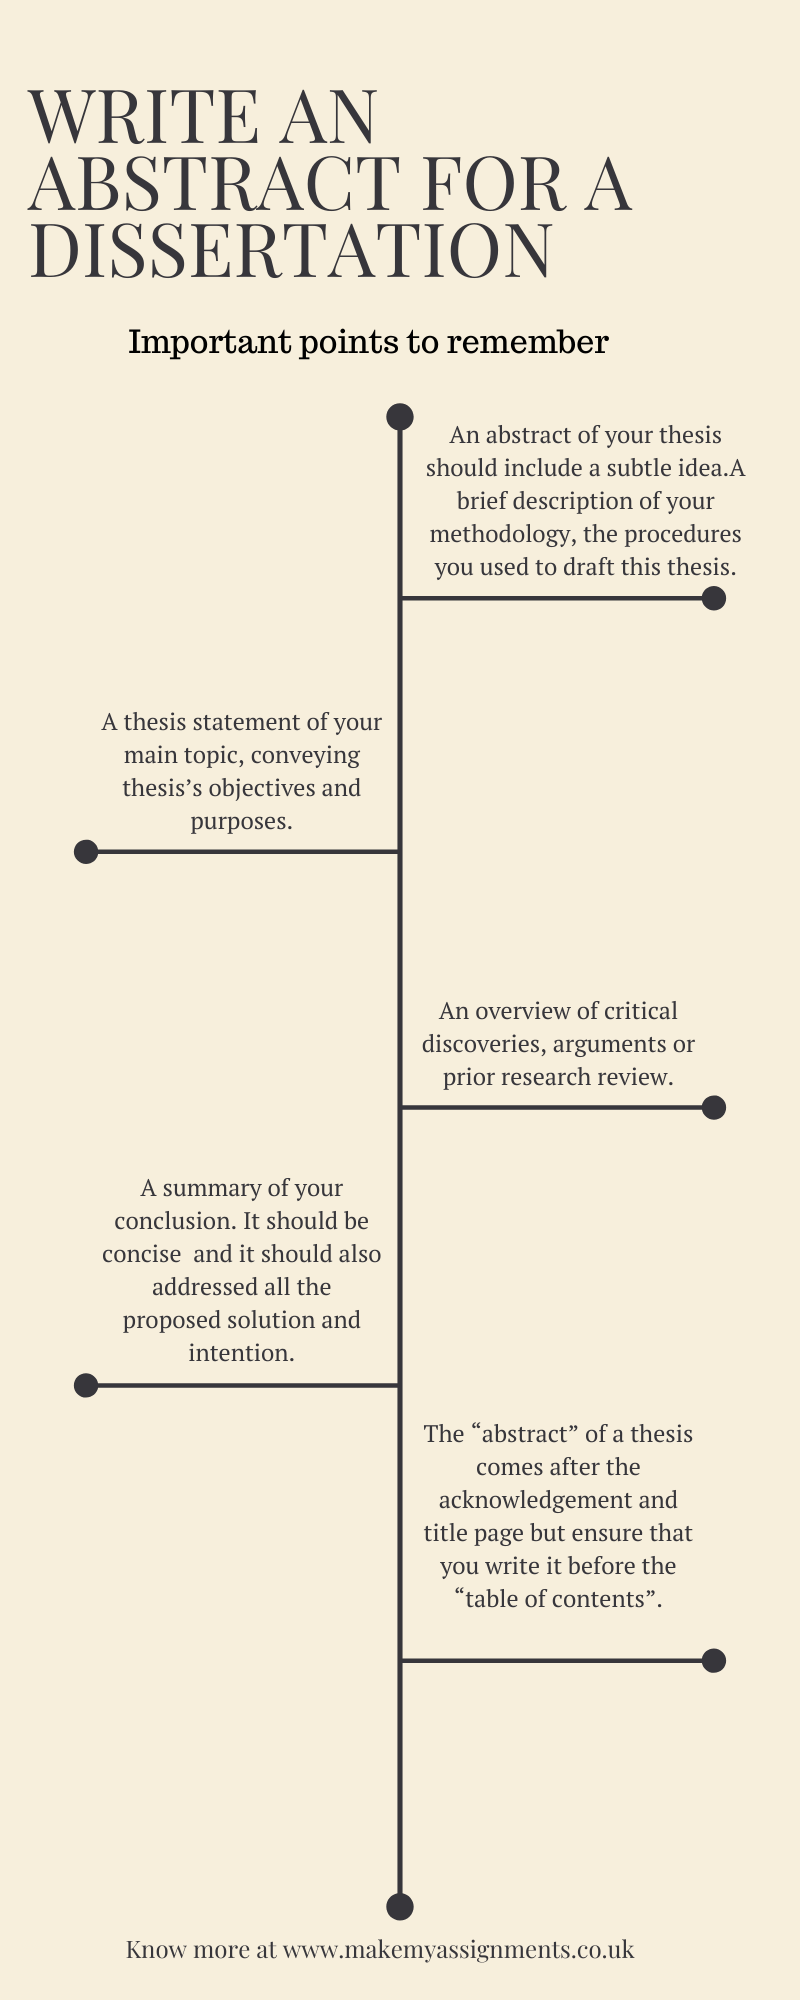 How to Write an Abstract for a Dissertation.